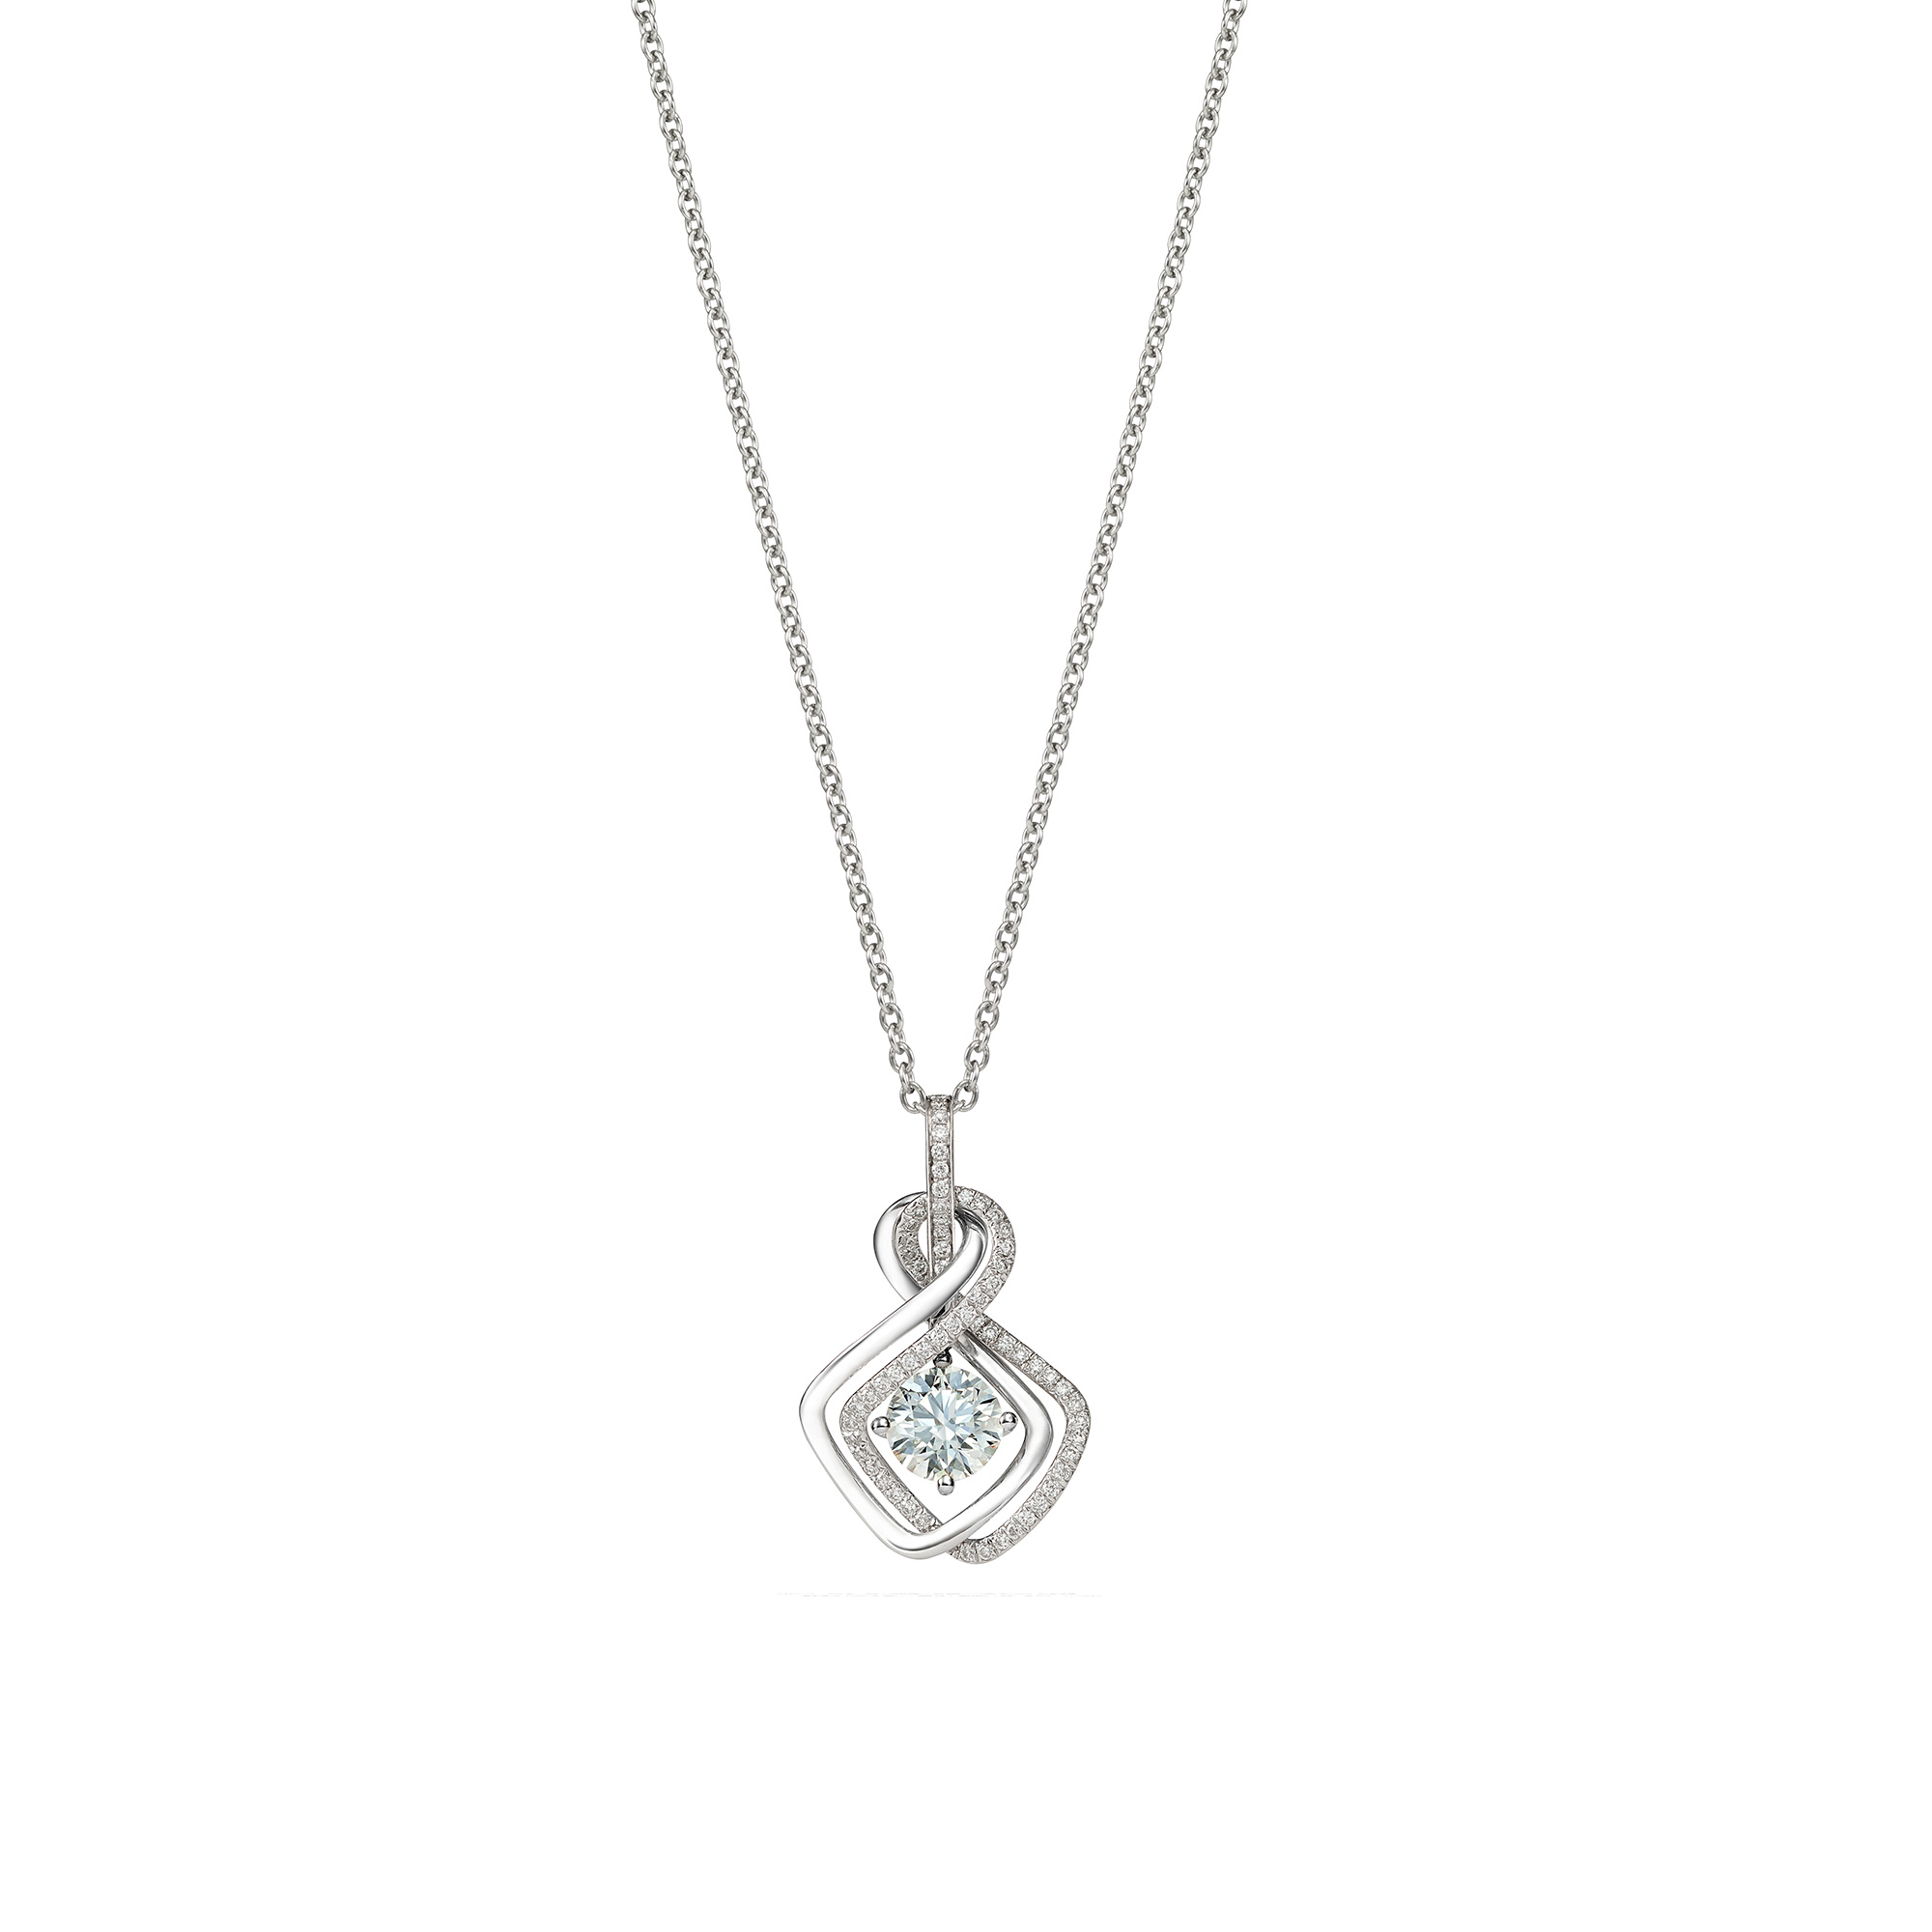 Forevermark Revel Diamond Necklace